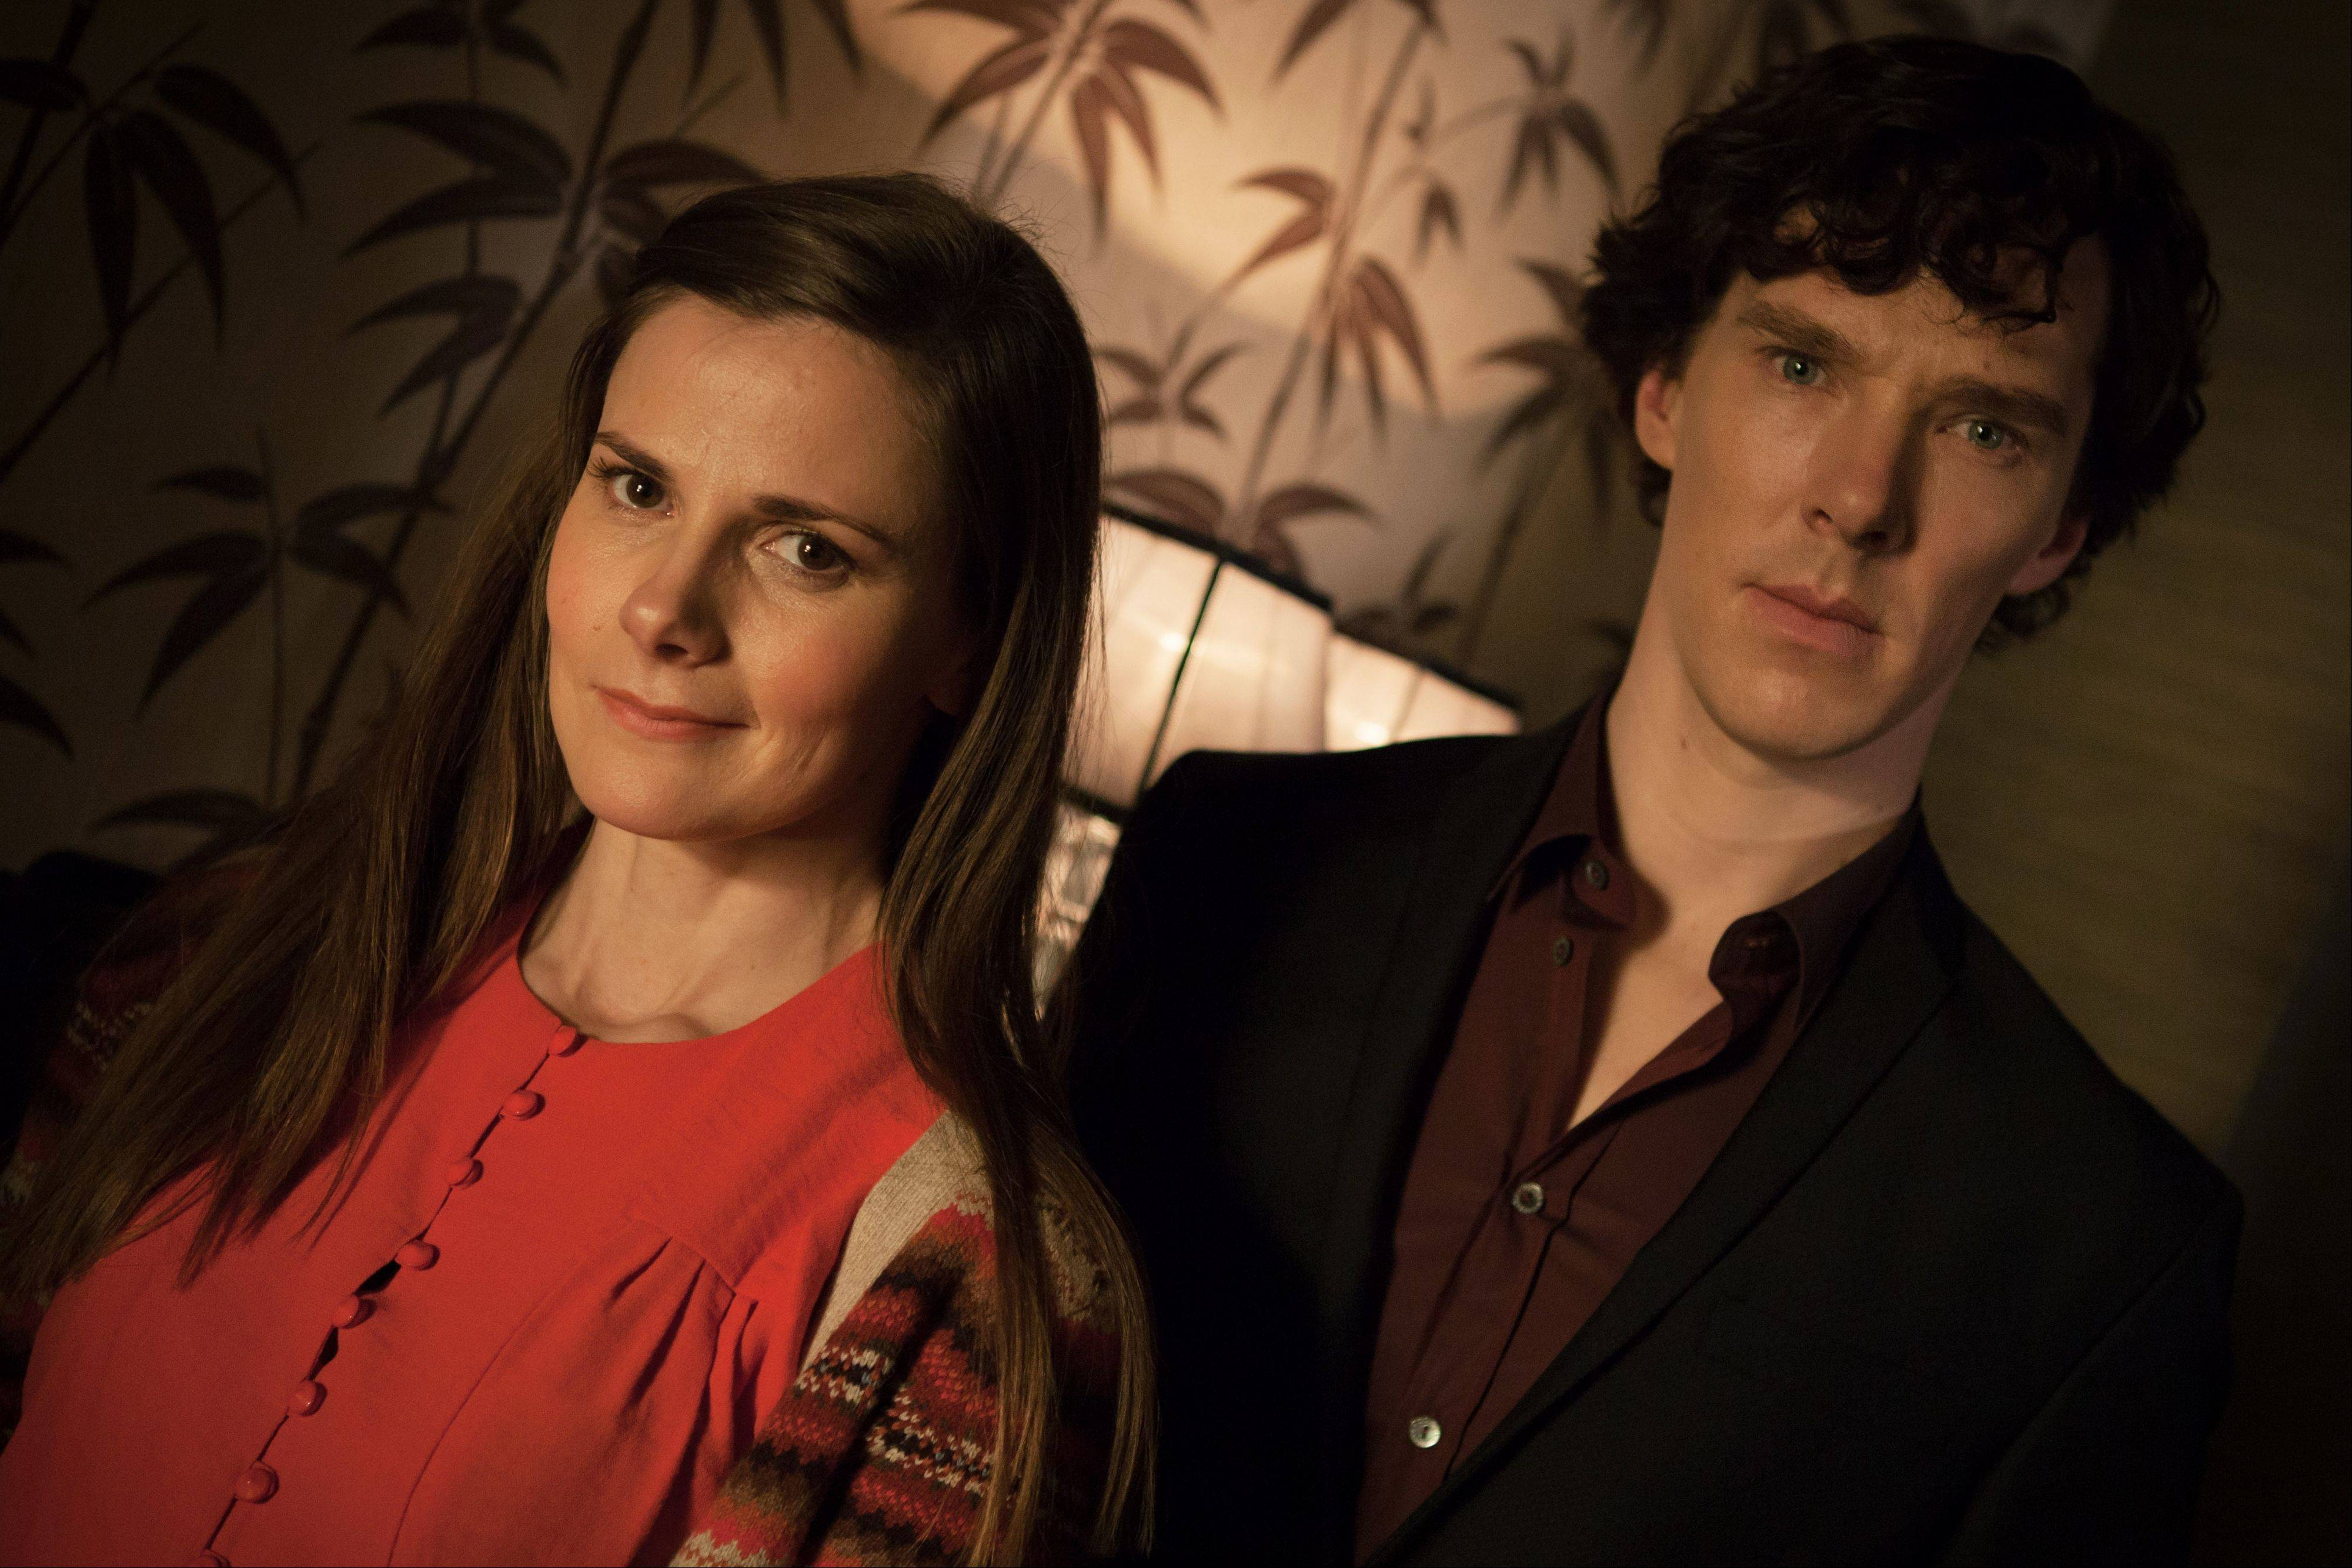 Louise Brealey, left, as Molly Hooper and Benedict Cumberbatch as Sherlock Holmes, in a scene from Season 3, �The Empty Hearse� episode of Masterpiece�s �Sherlock,� which aired on Jan. 19, 2014, on PBS.